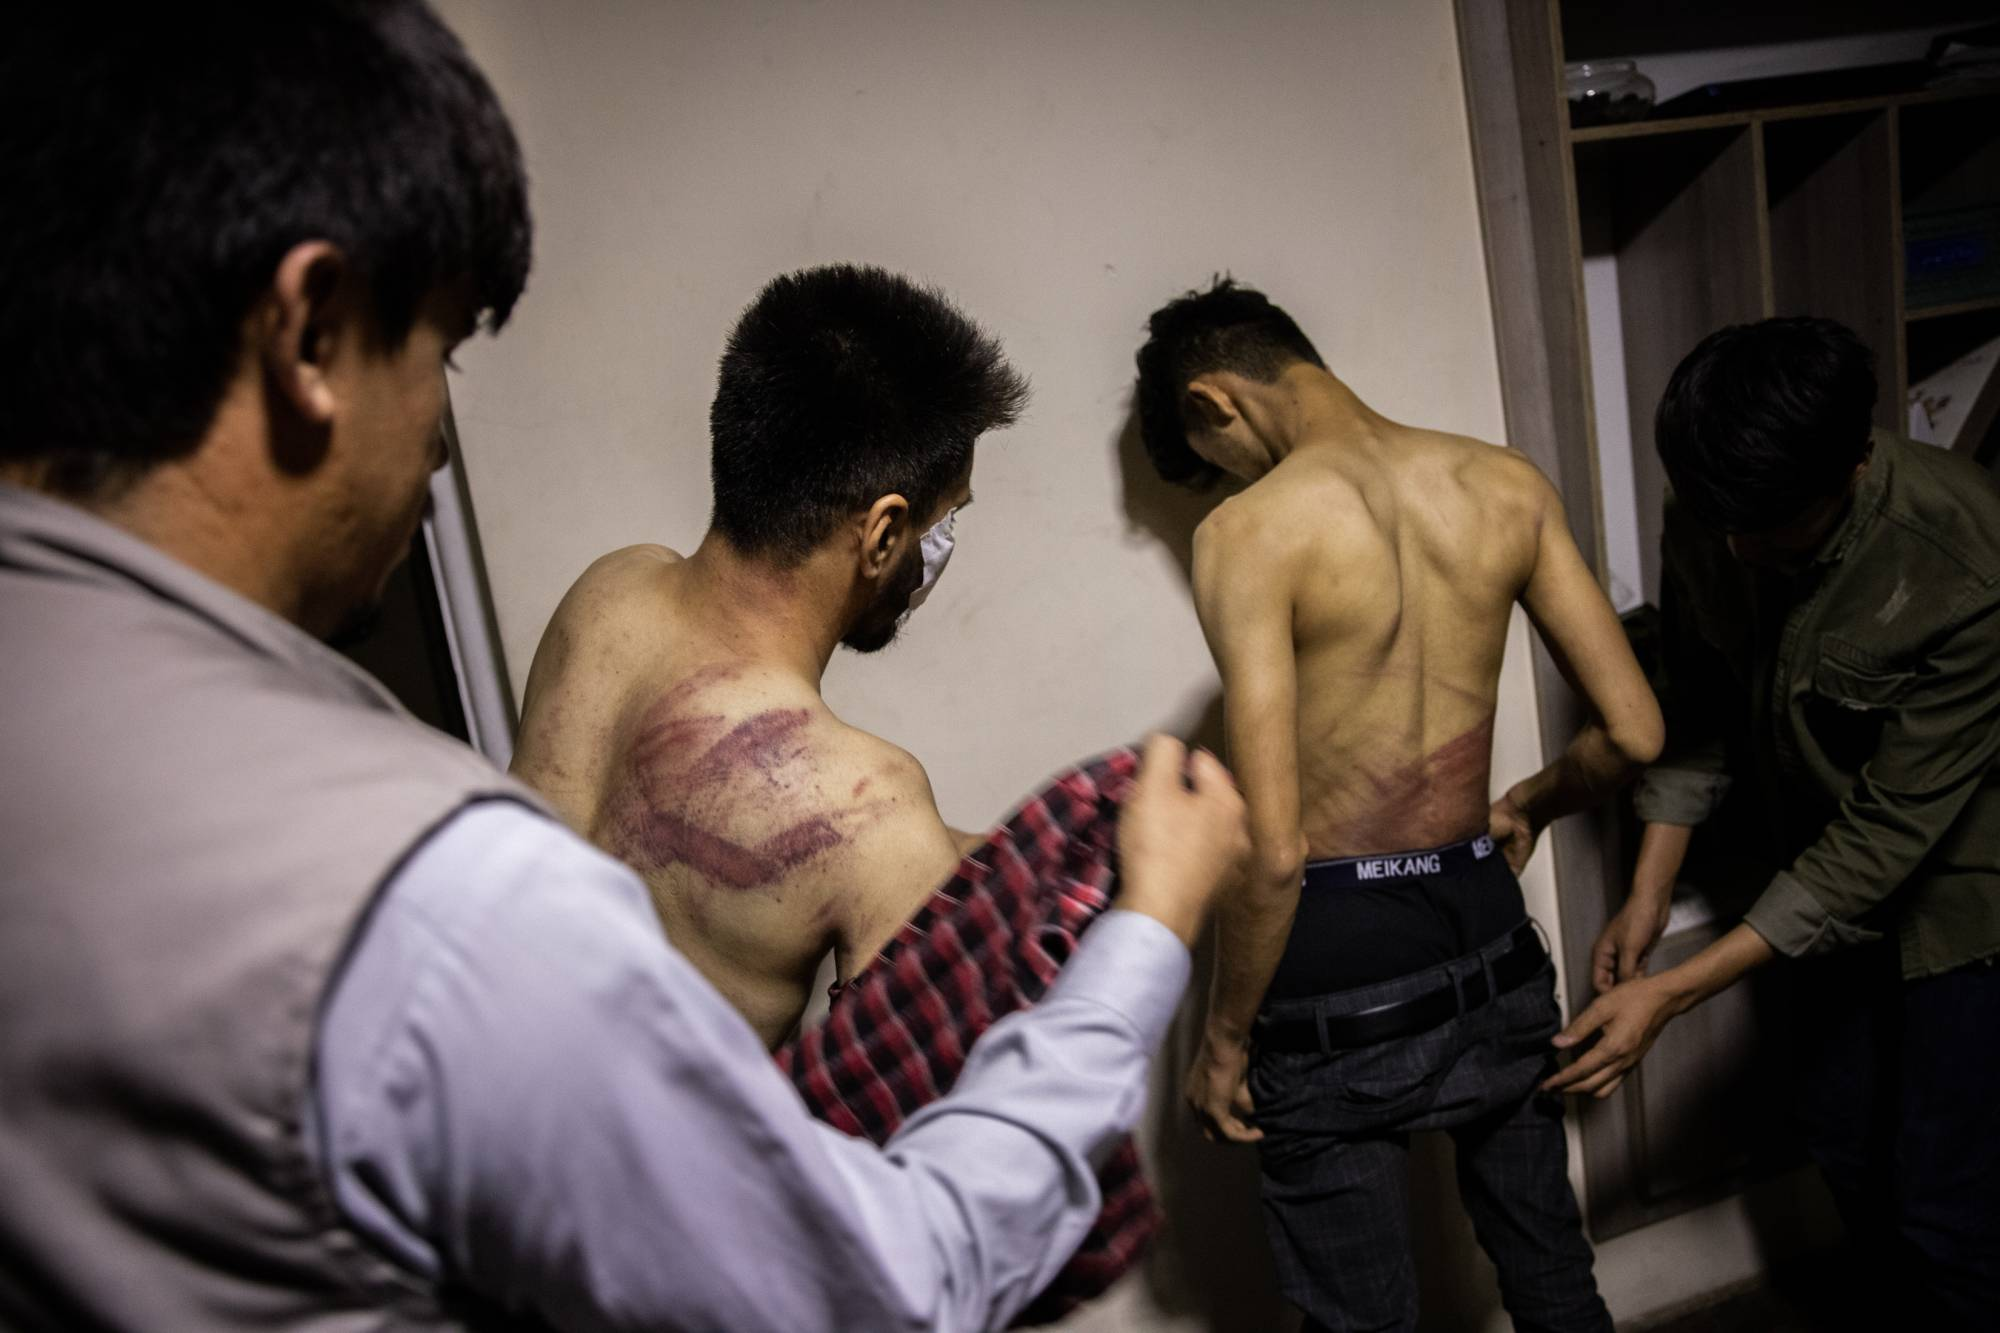 Two Afghan journalists who said they were beaten by members of the Taliban because they were covering a protest in Kabul | JIM HUYLEBROEK/THE NEW YORK TIMES